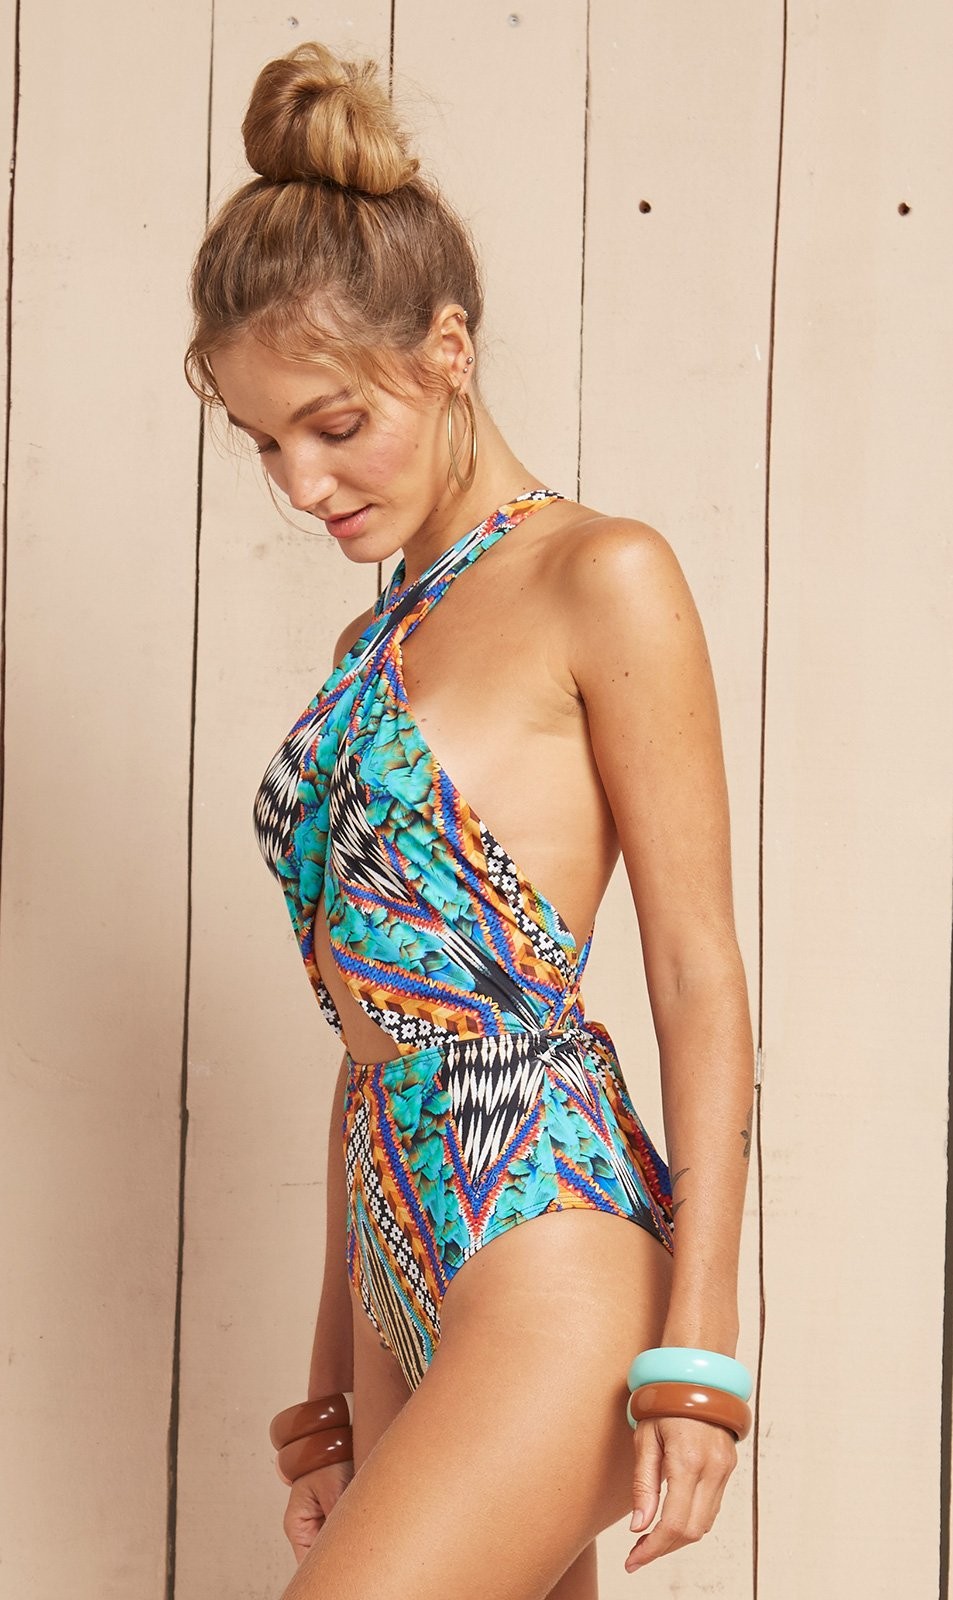 ea9280da9ad Printed One-piece Swimsuit With Criss-cross Front And Back - Onda ...